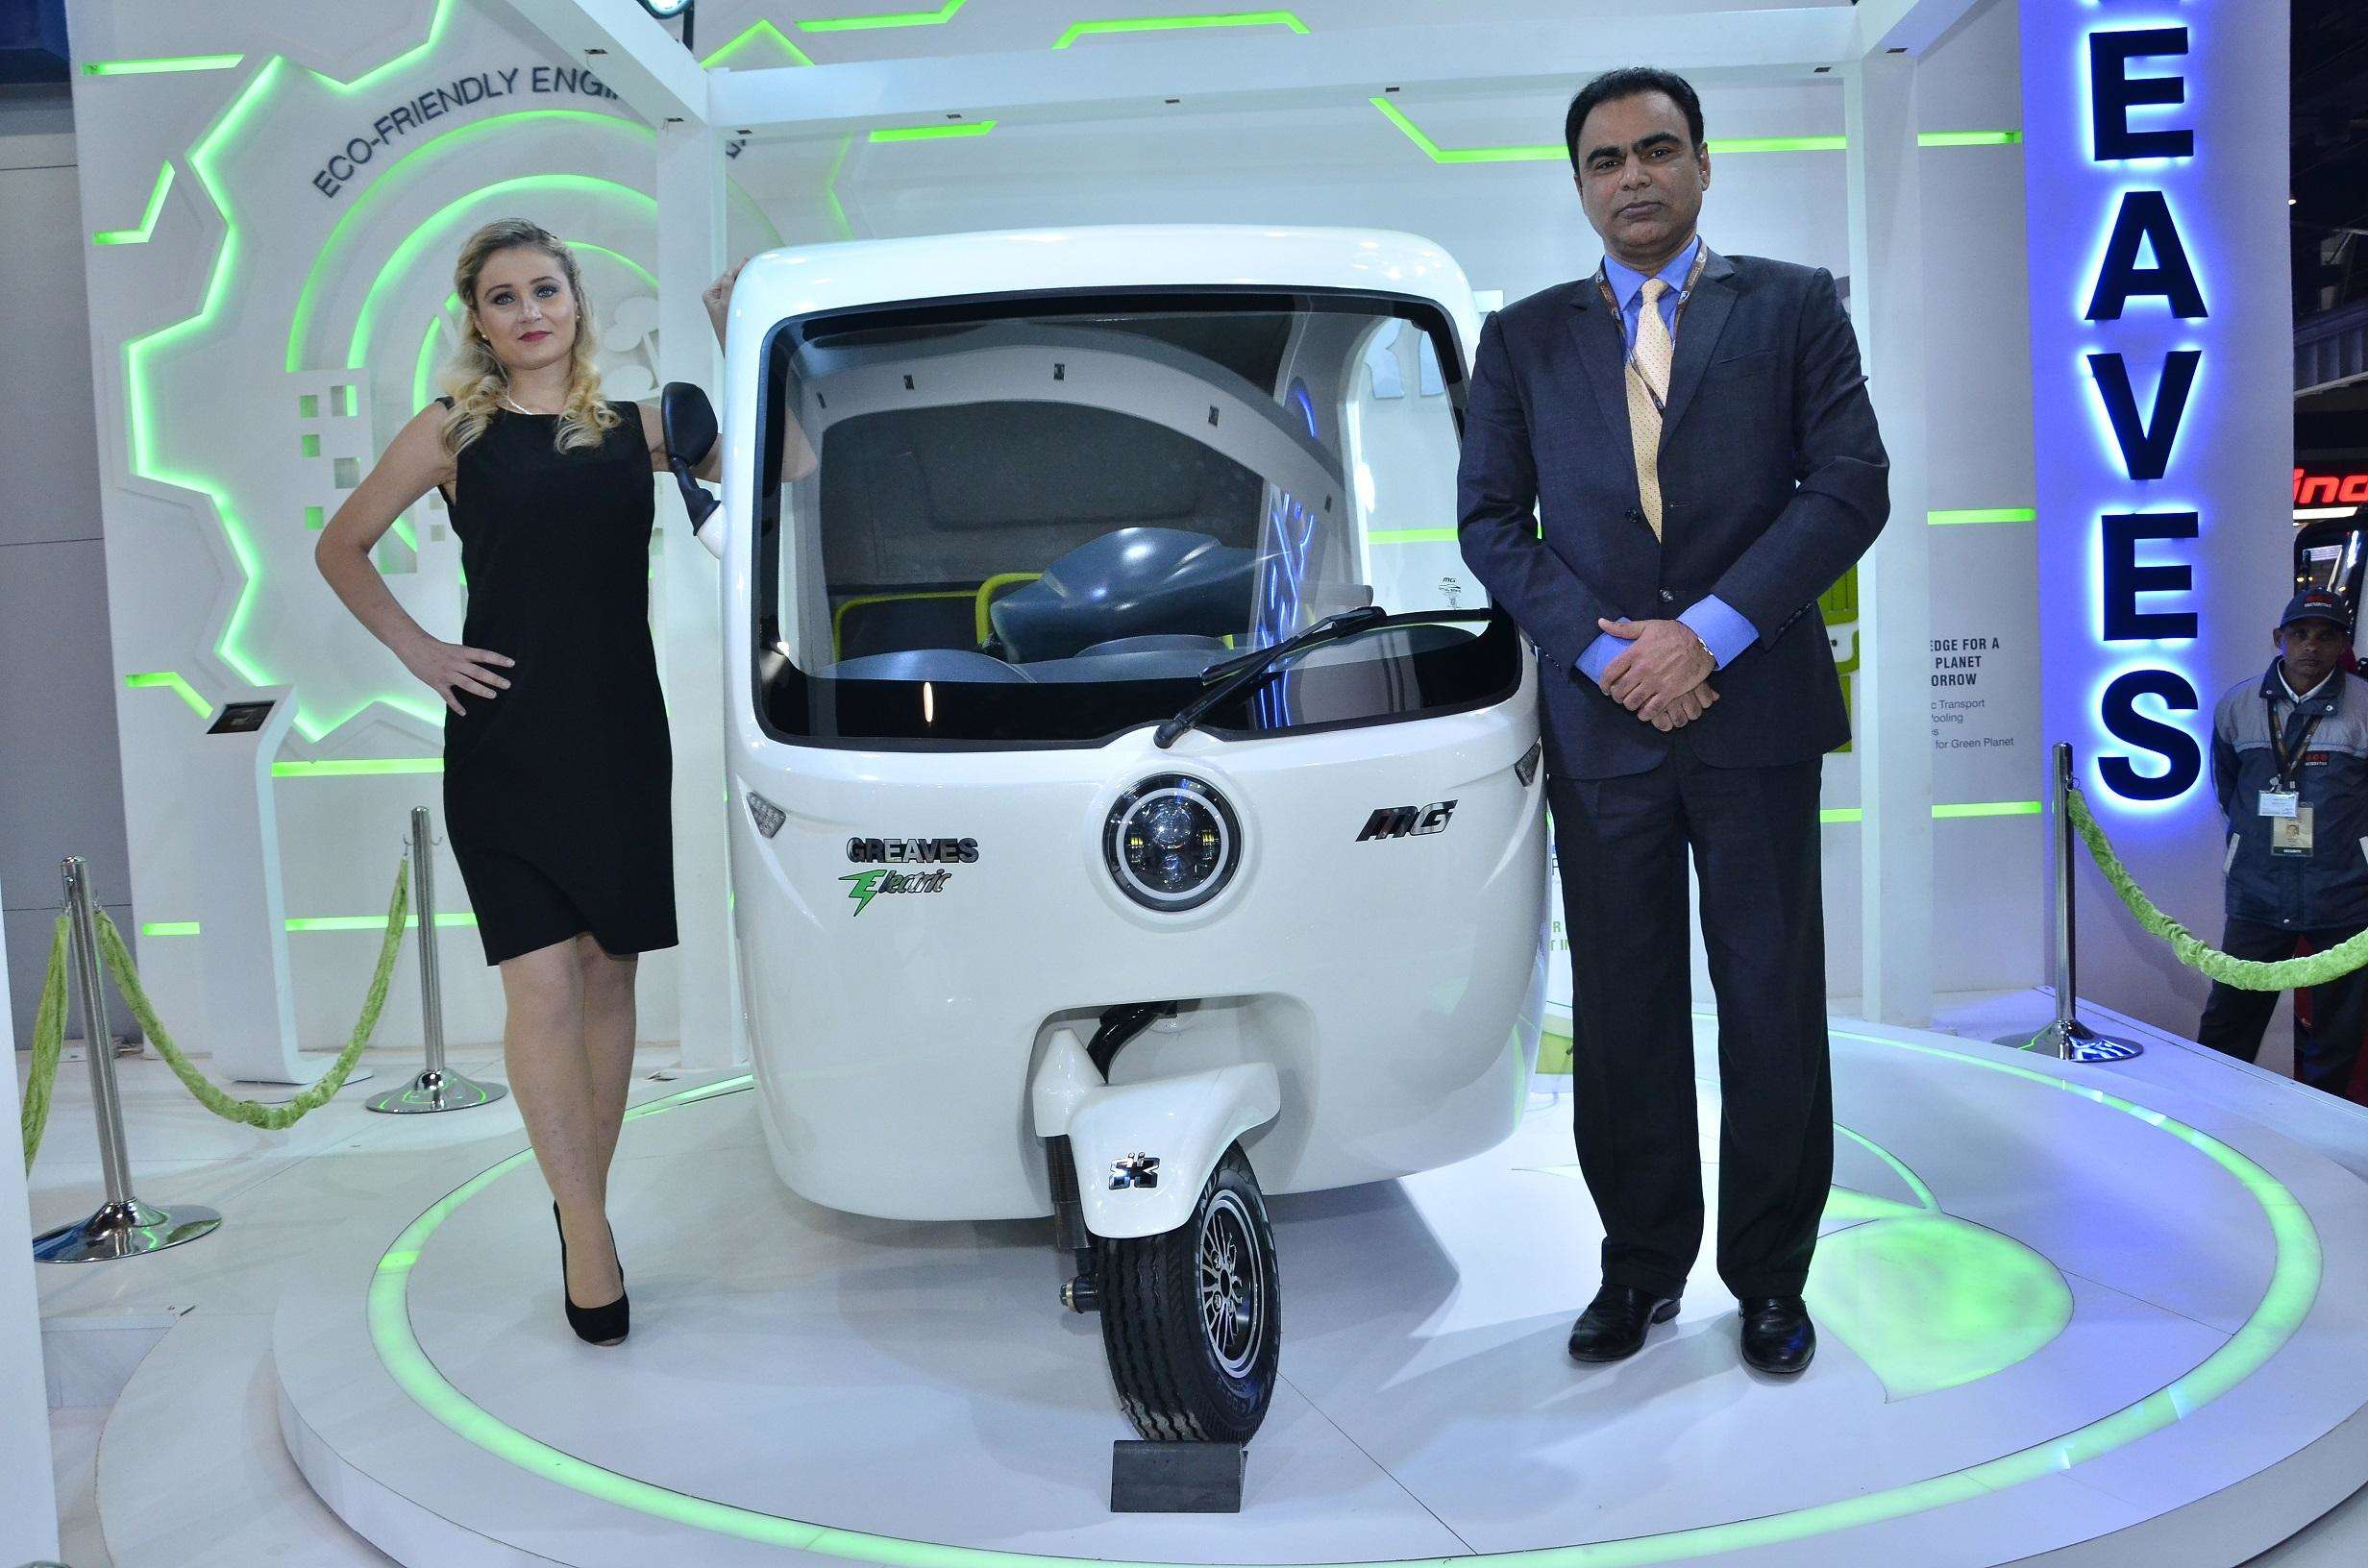 Greaves Cotton Autoexpo2018 Greaves Cotton Launches Two Powertrain Solutions Auto News Et Auto